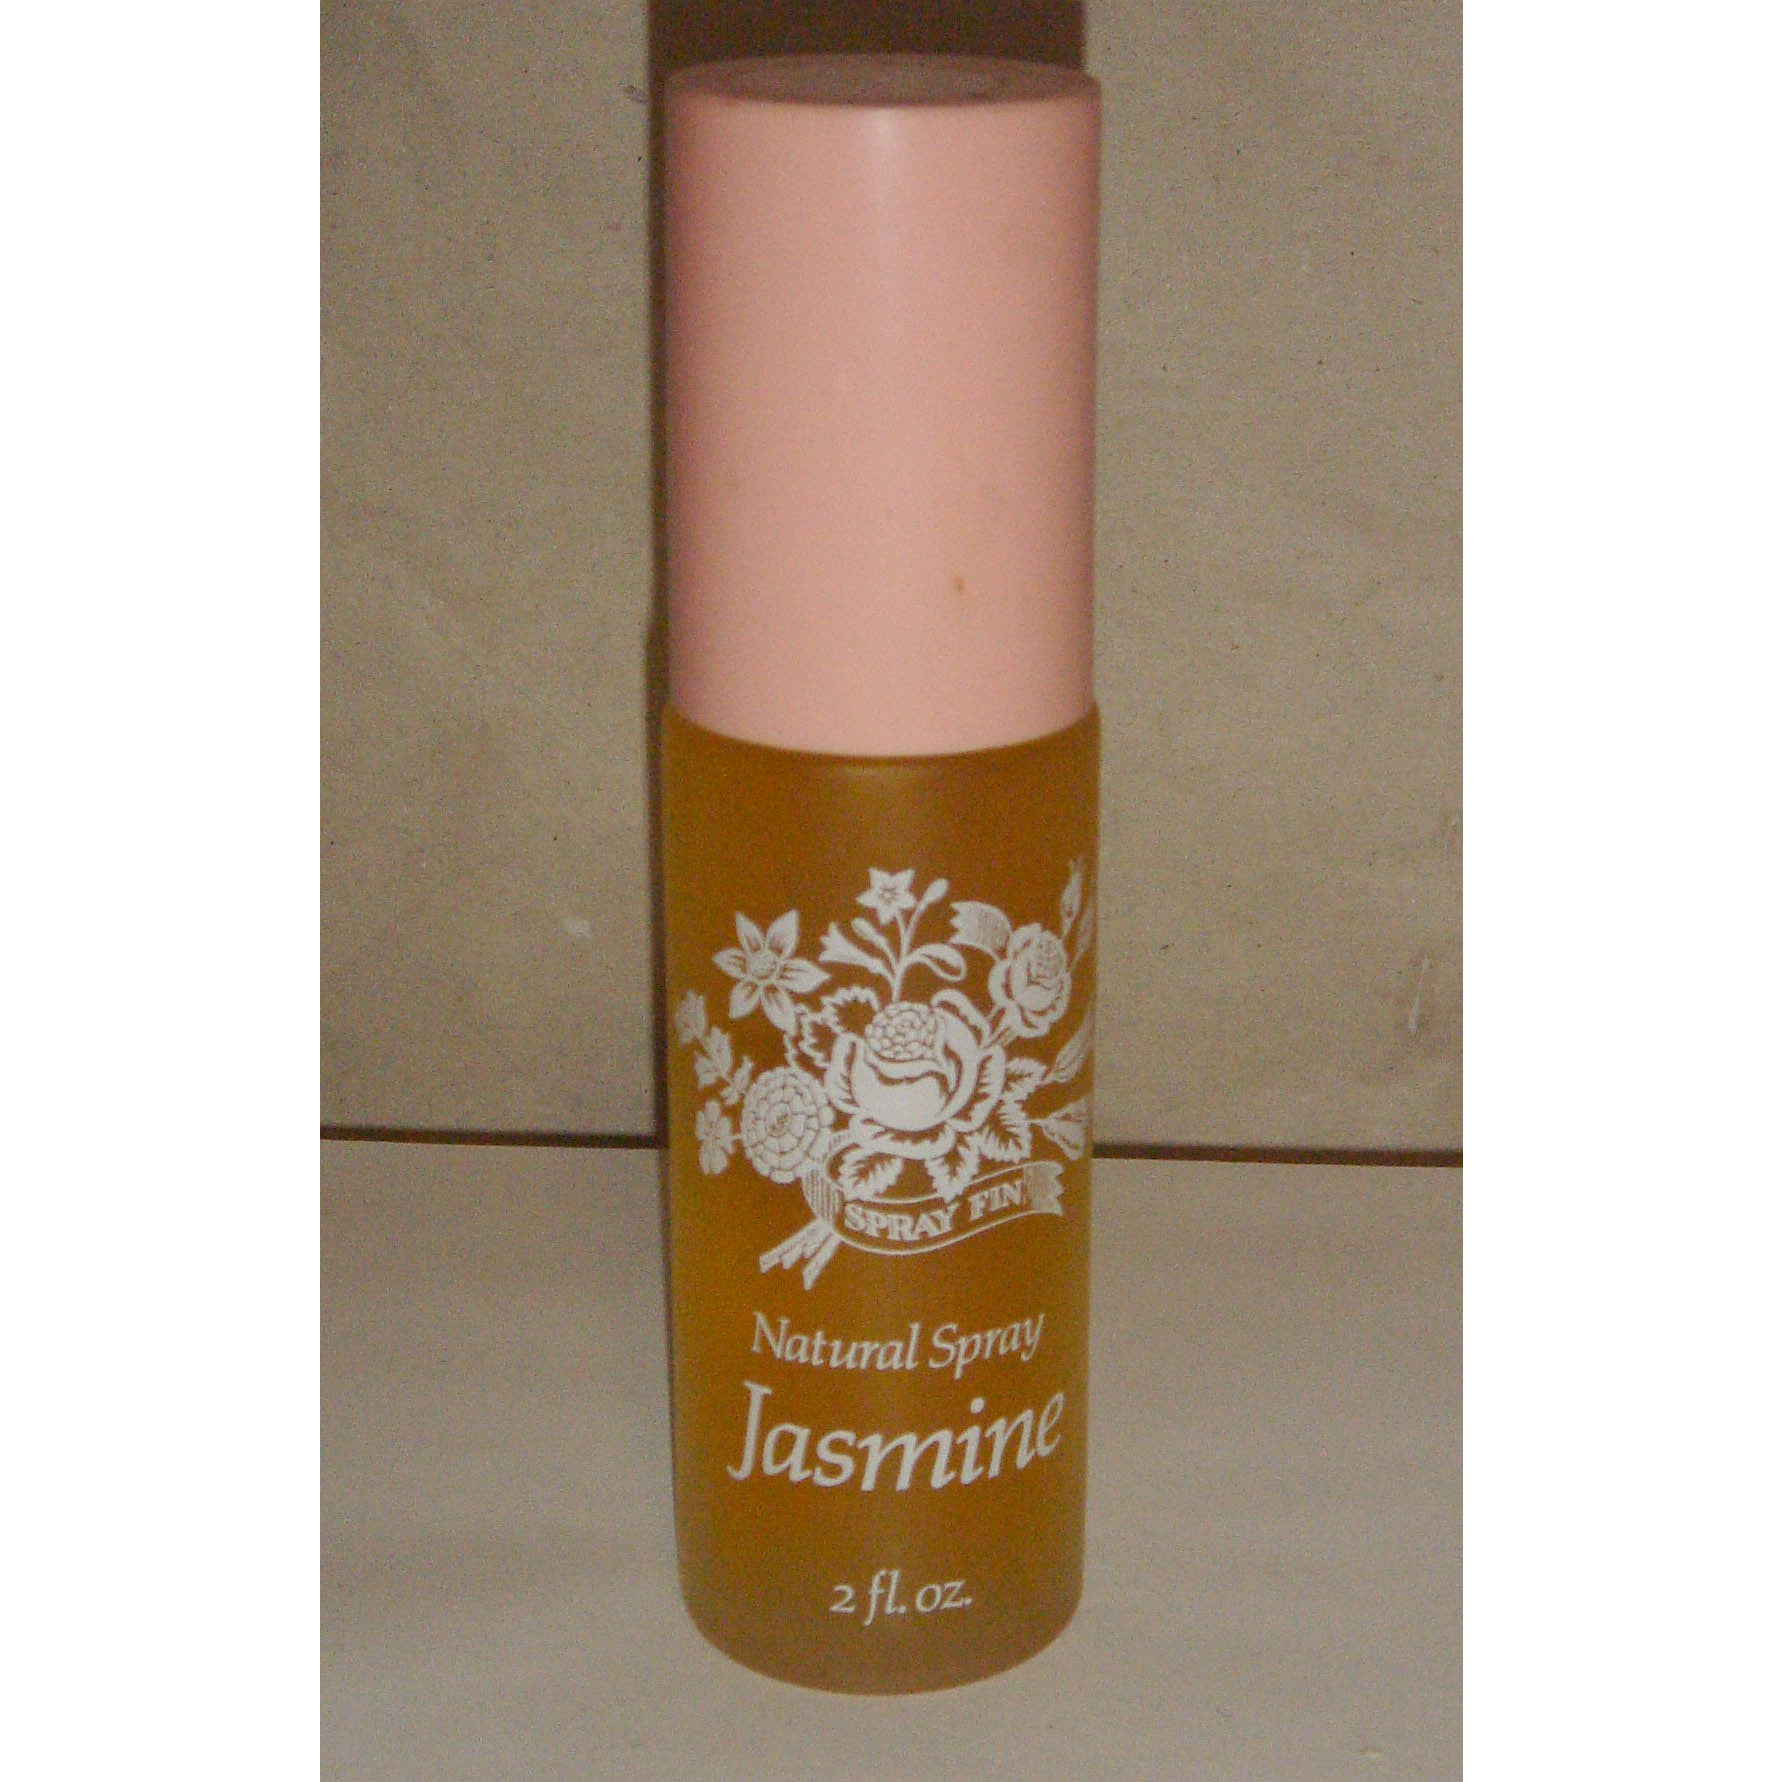 Vintage Alyssa Ashley Jasmine Natural Spray